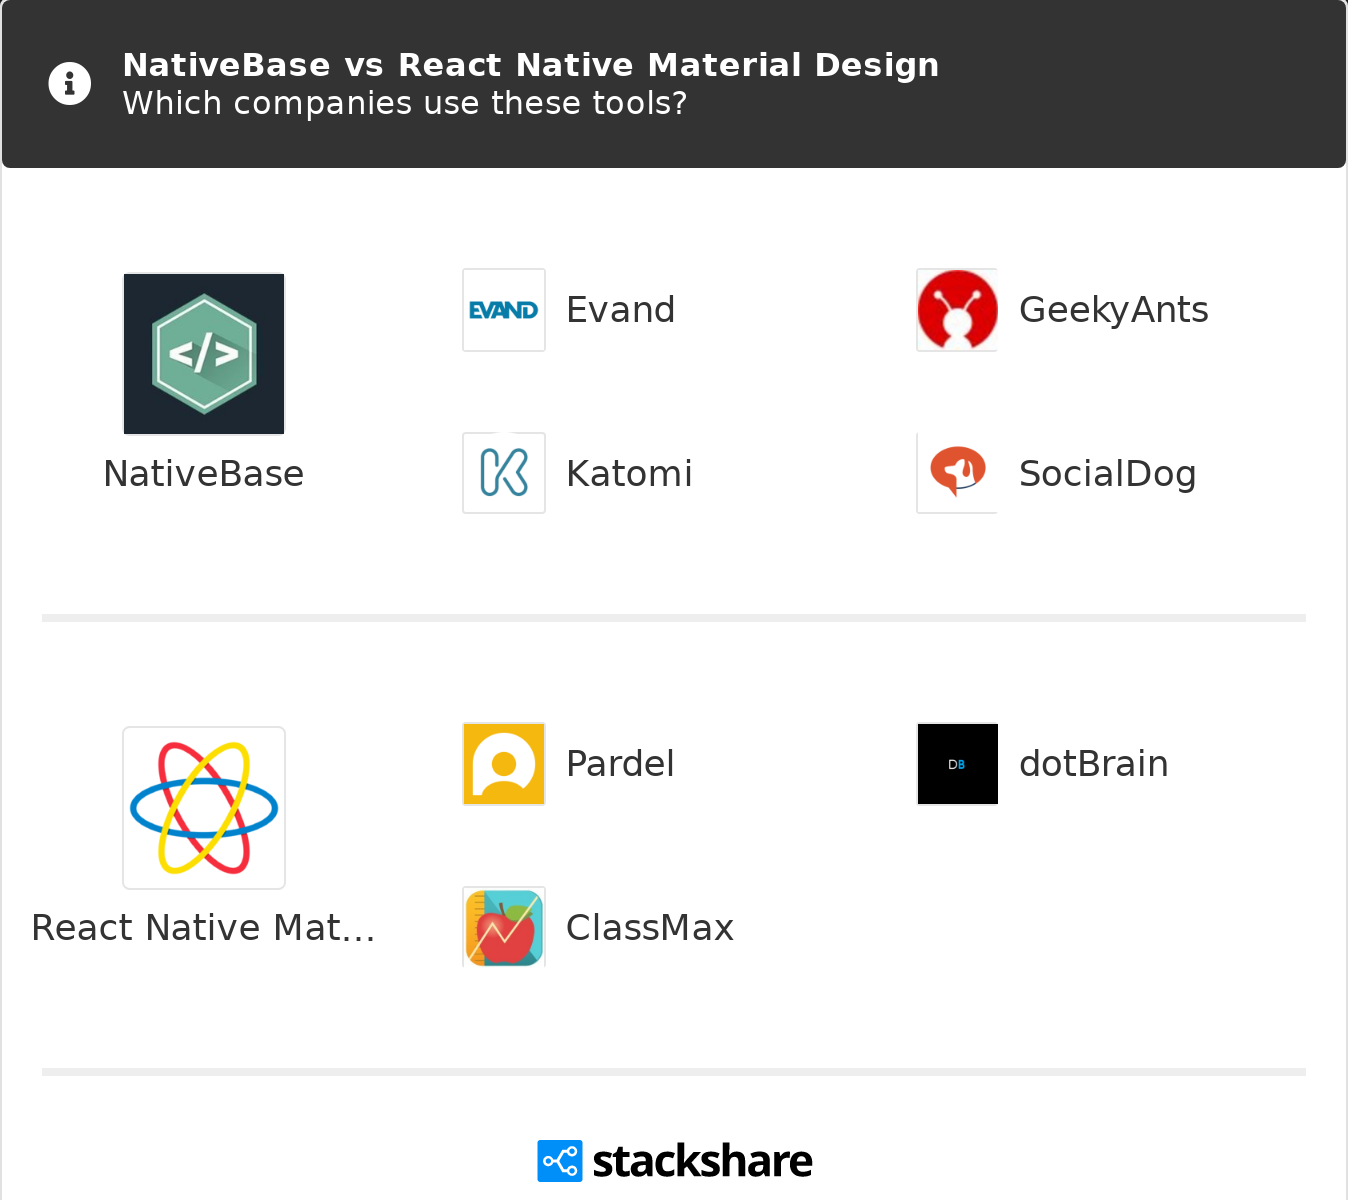 NativeBase vs React Native Material Design | What are the differences?